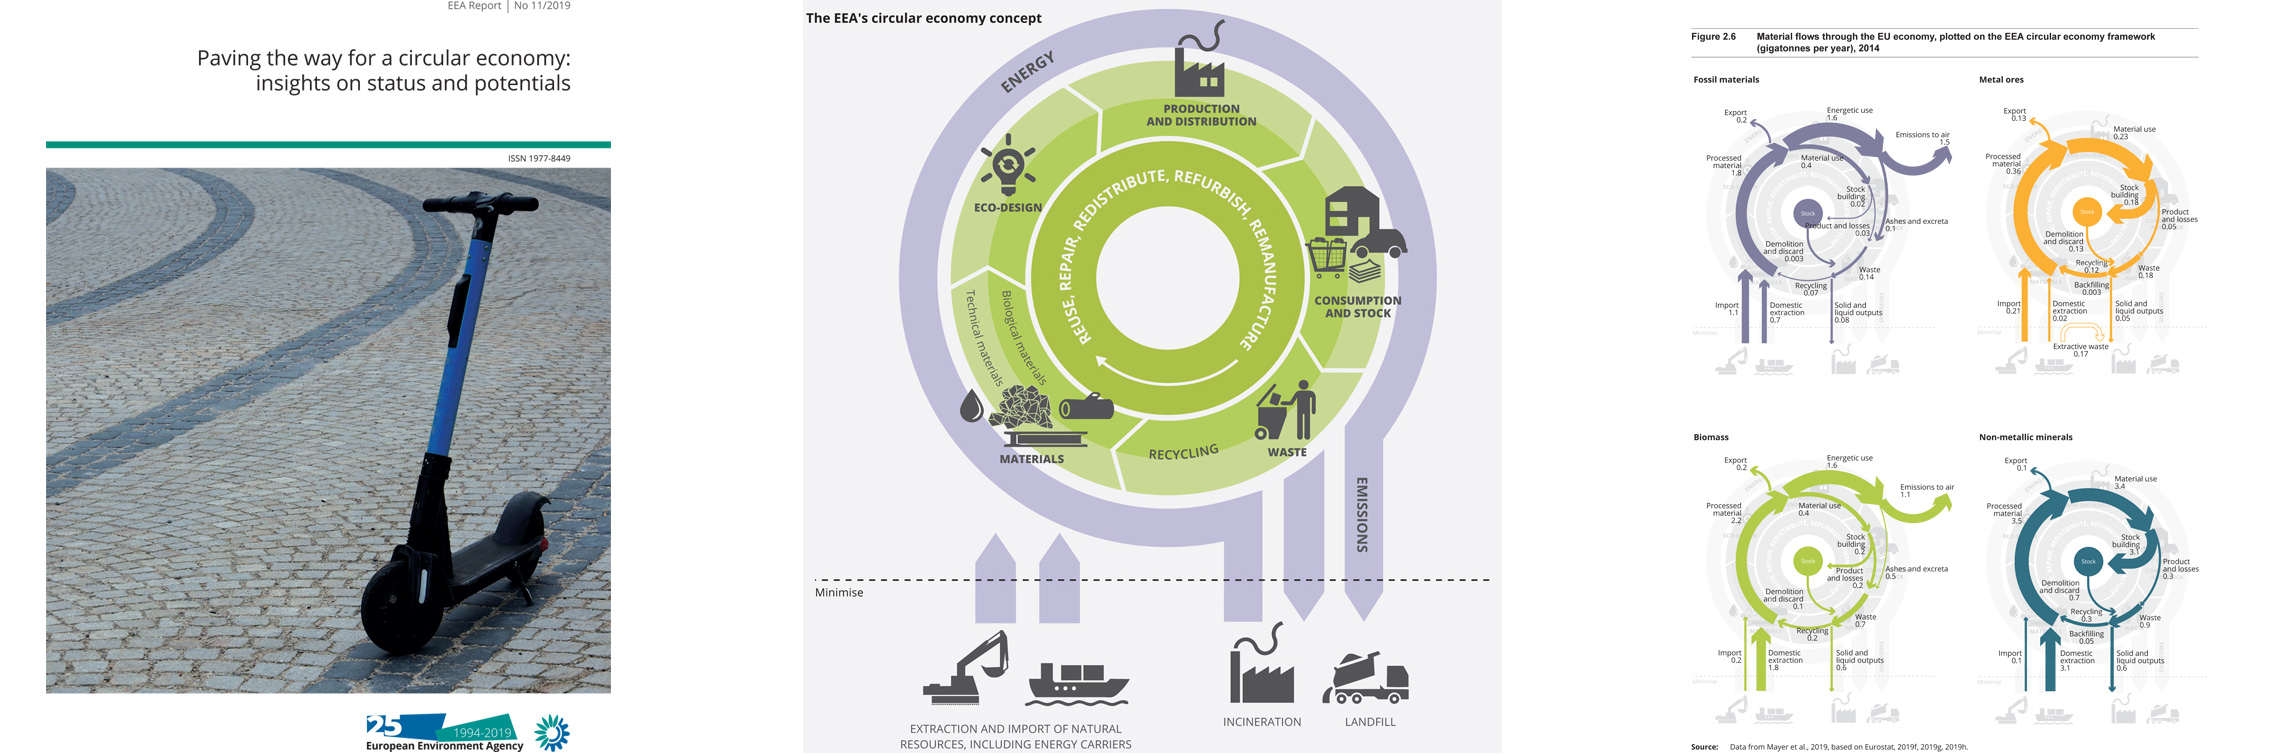 Paving the way for a circular economy insights on status and potentials